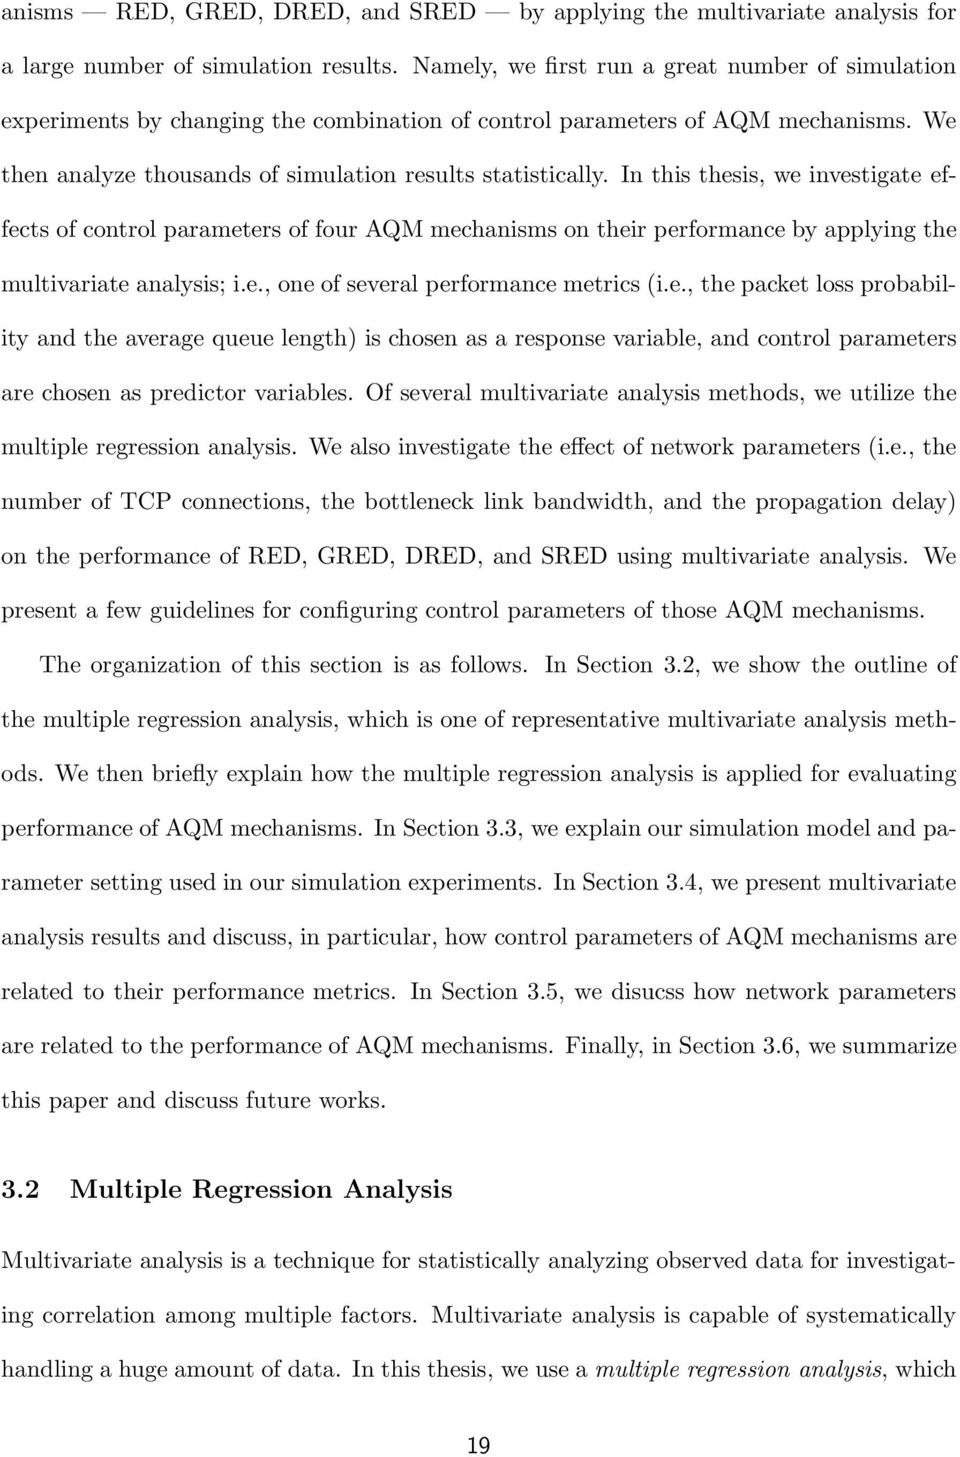 In this thesis, we investigate effects of control parameters of four AQM mechanisms on their performance by applying the multivariate analysis; i.e., one of several performance metrics (i.e., the packet loss probability and the average queue length) is chosen as a response variable, and control parameters are chosen as predictor variables.